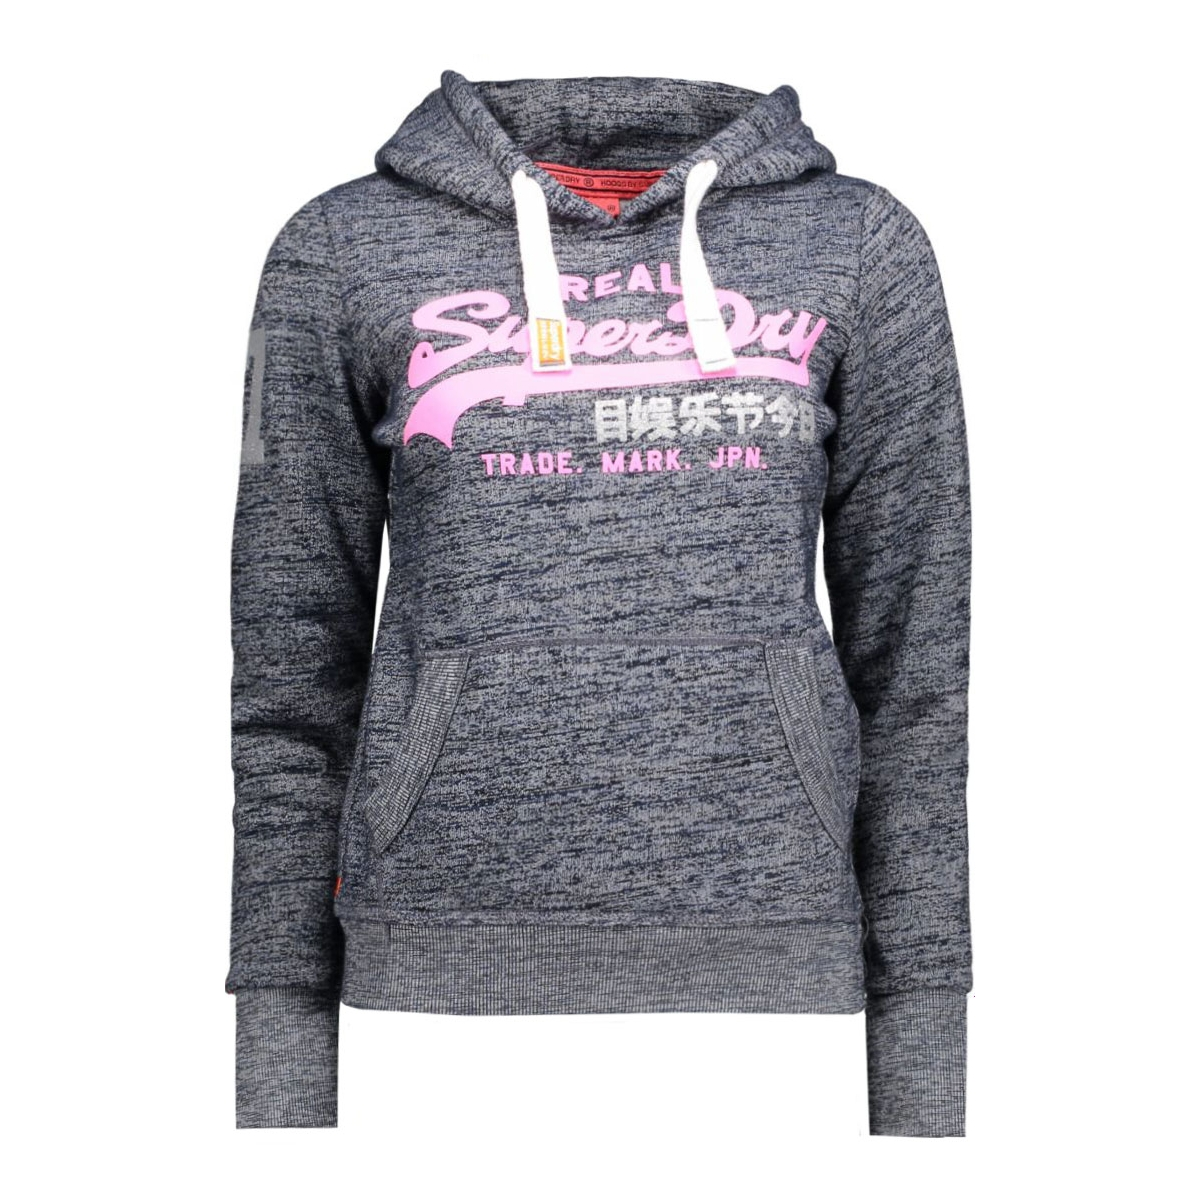 g20067xnf4 superdry sweater blackened